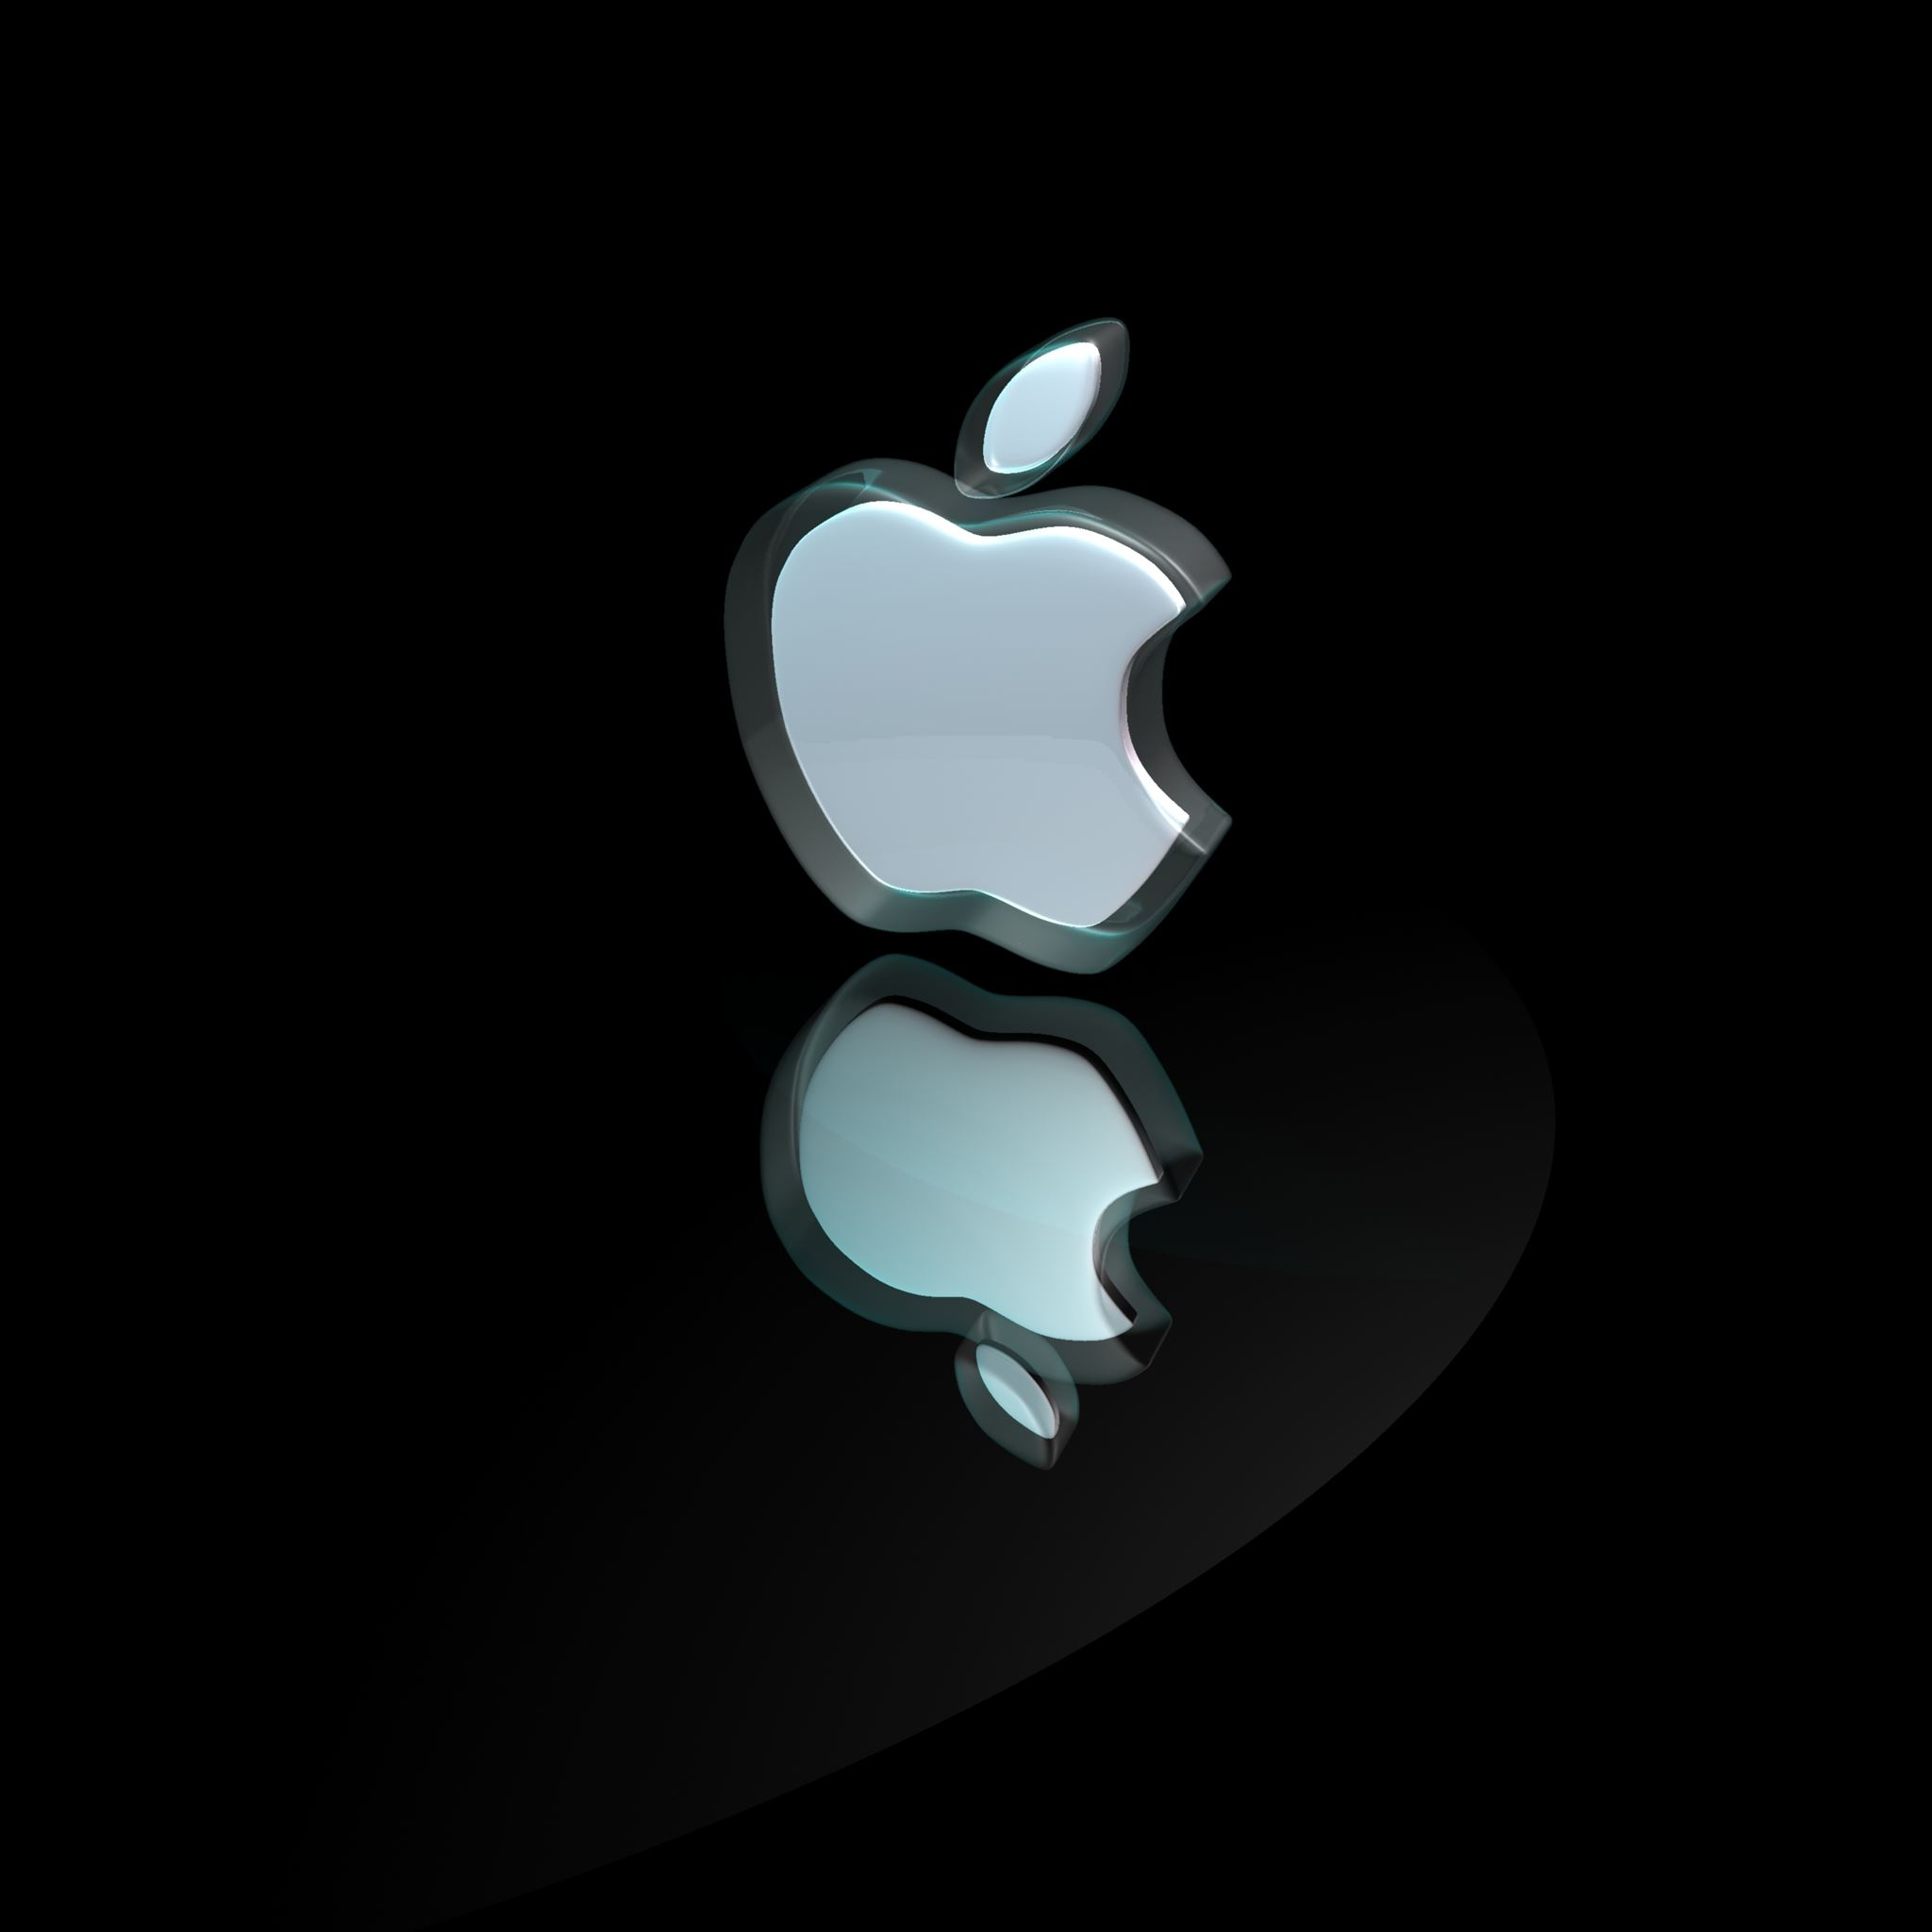 3d Apple Logo Ipad Air Wallpaper Download Iphone Wallpapers Ipad